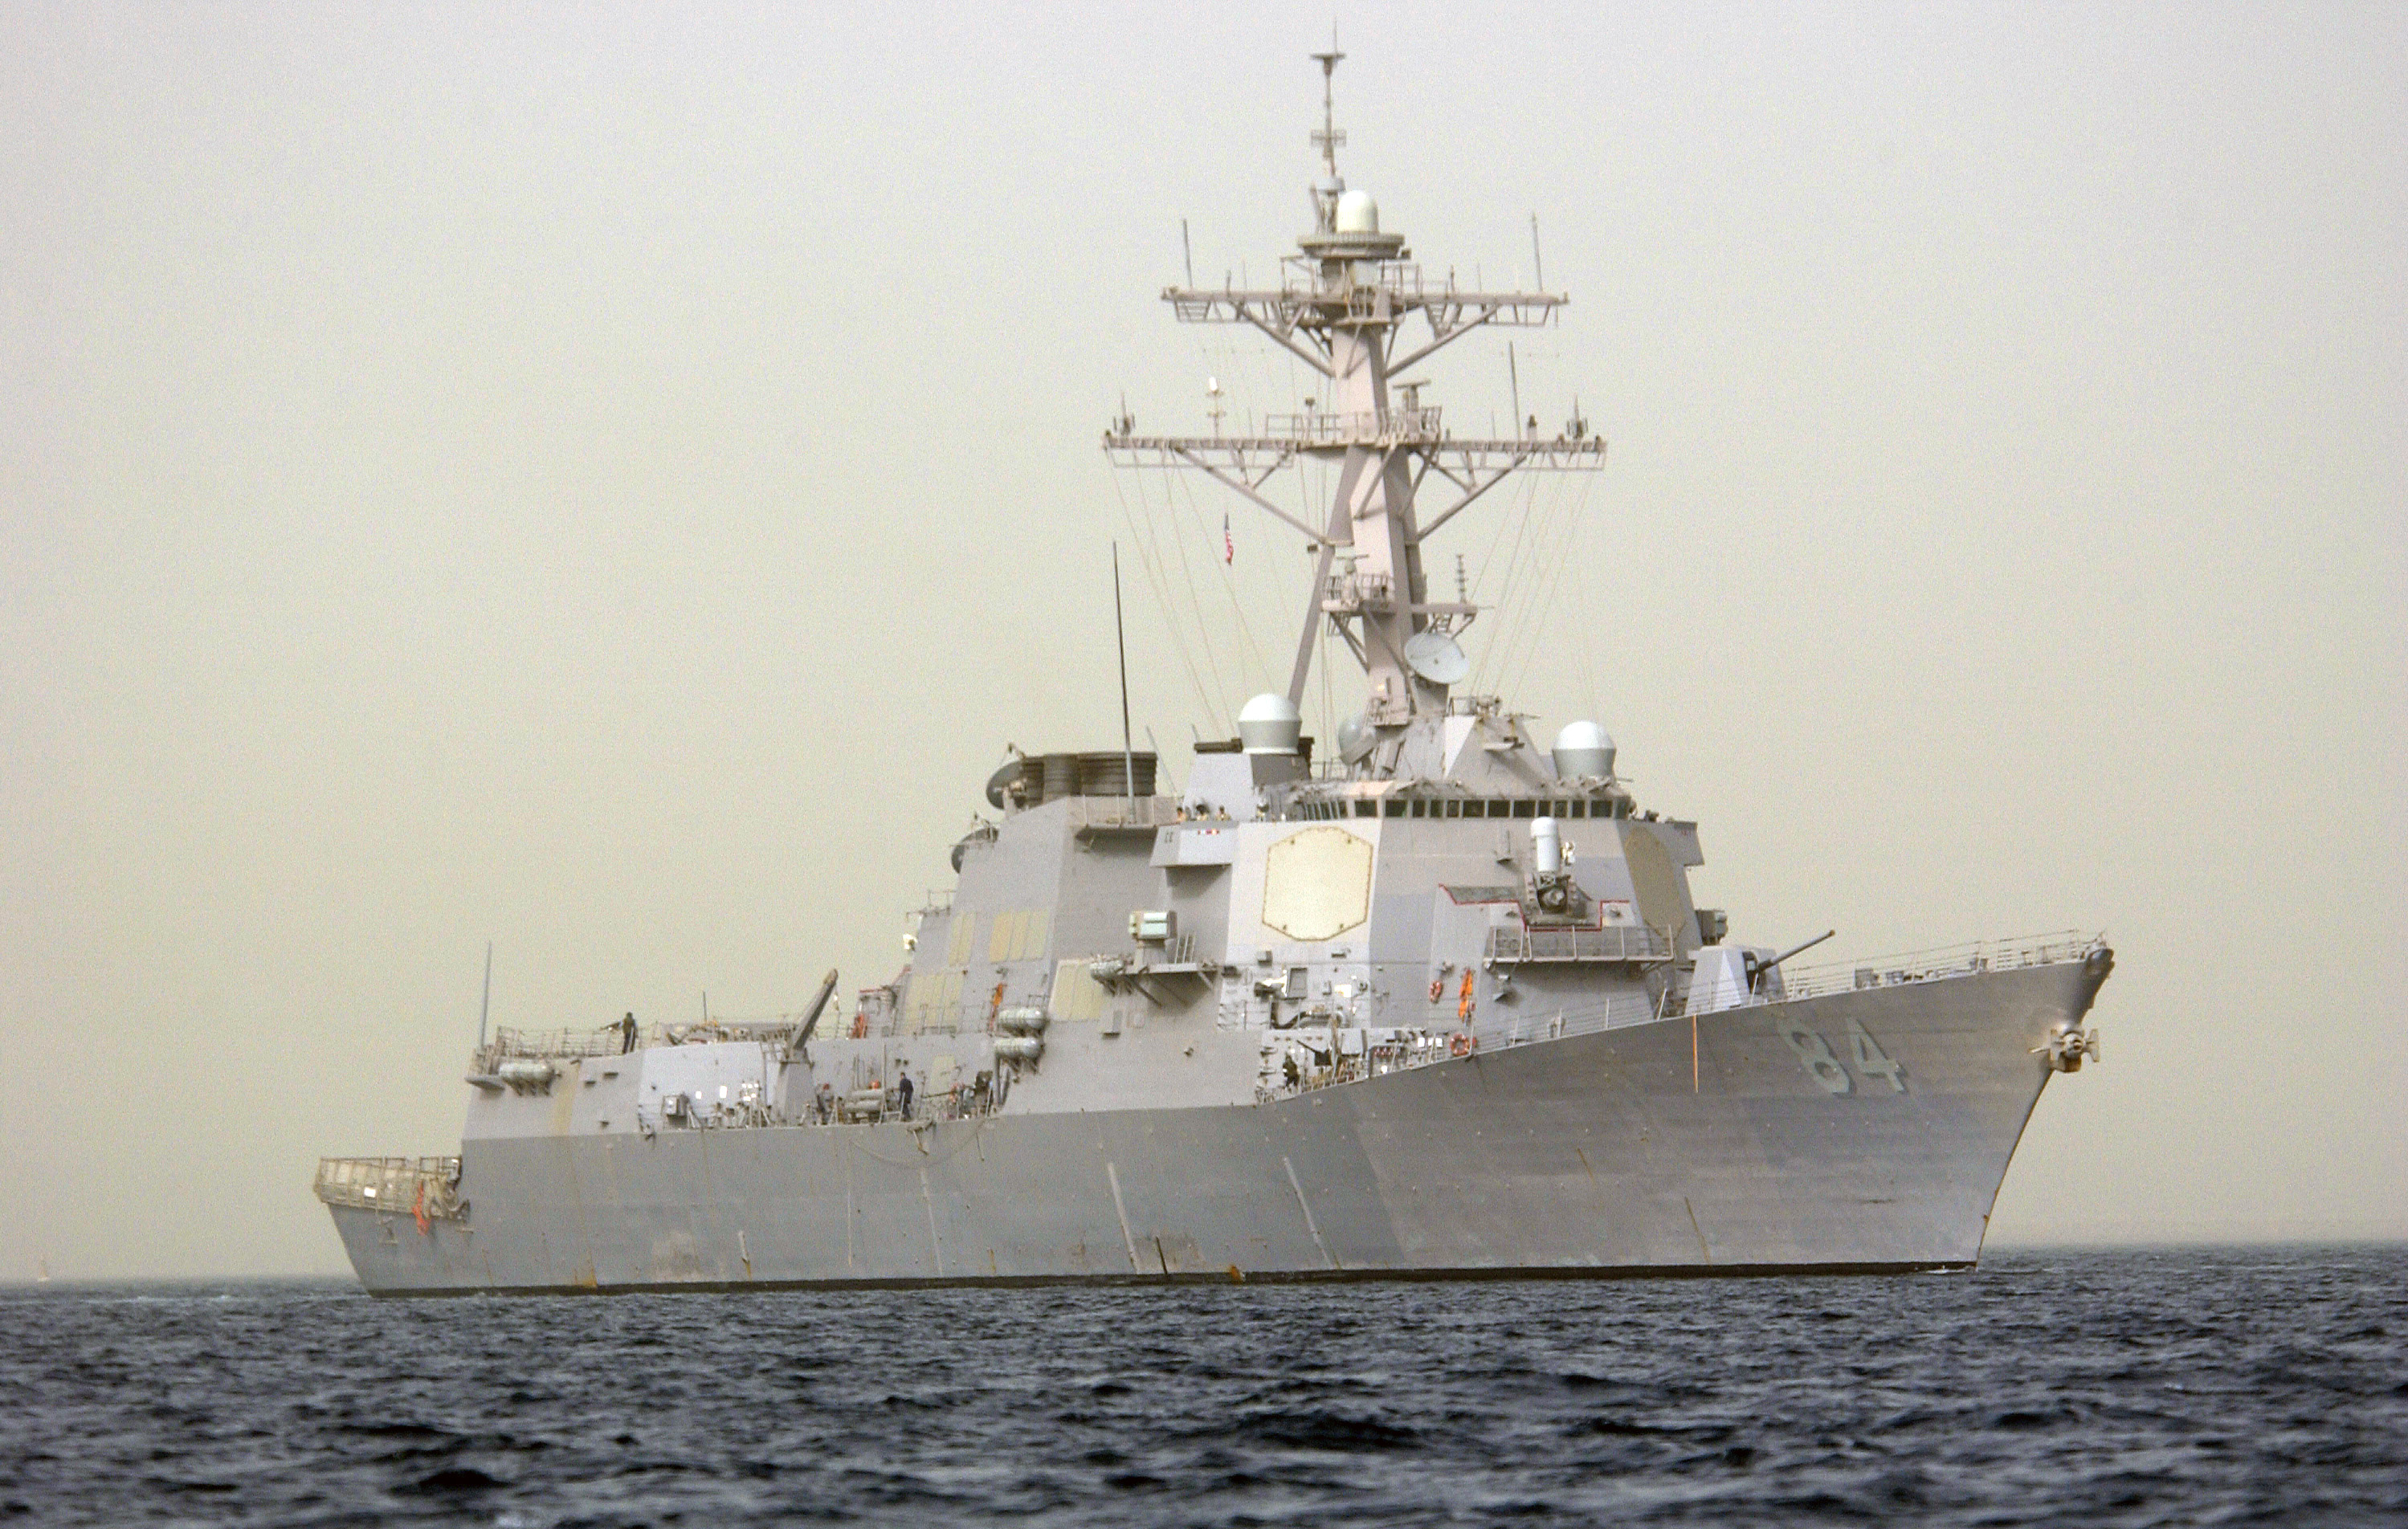 USS Bulkeley in the Persian gulf.